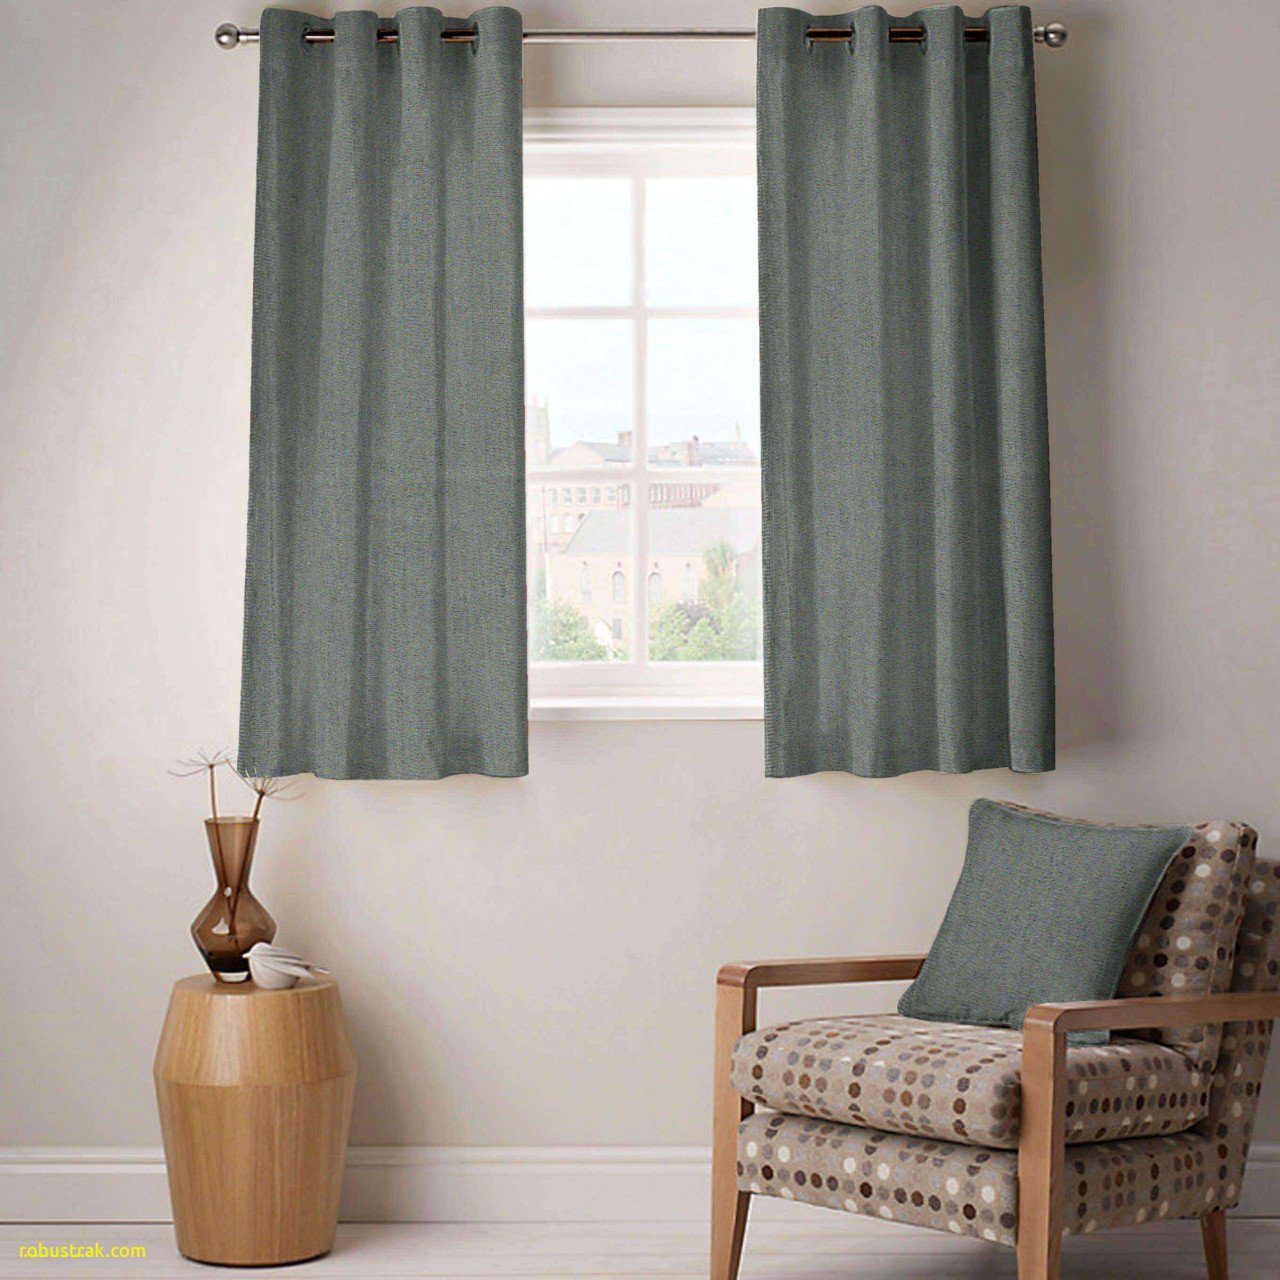 Best Curtains for Bedroom Awesome Bedroom Curtain Ideas — Procura Home Blog